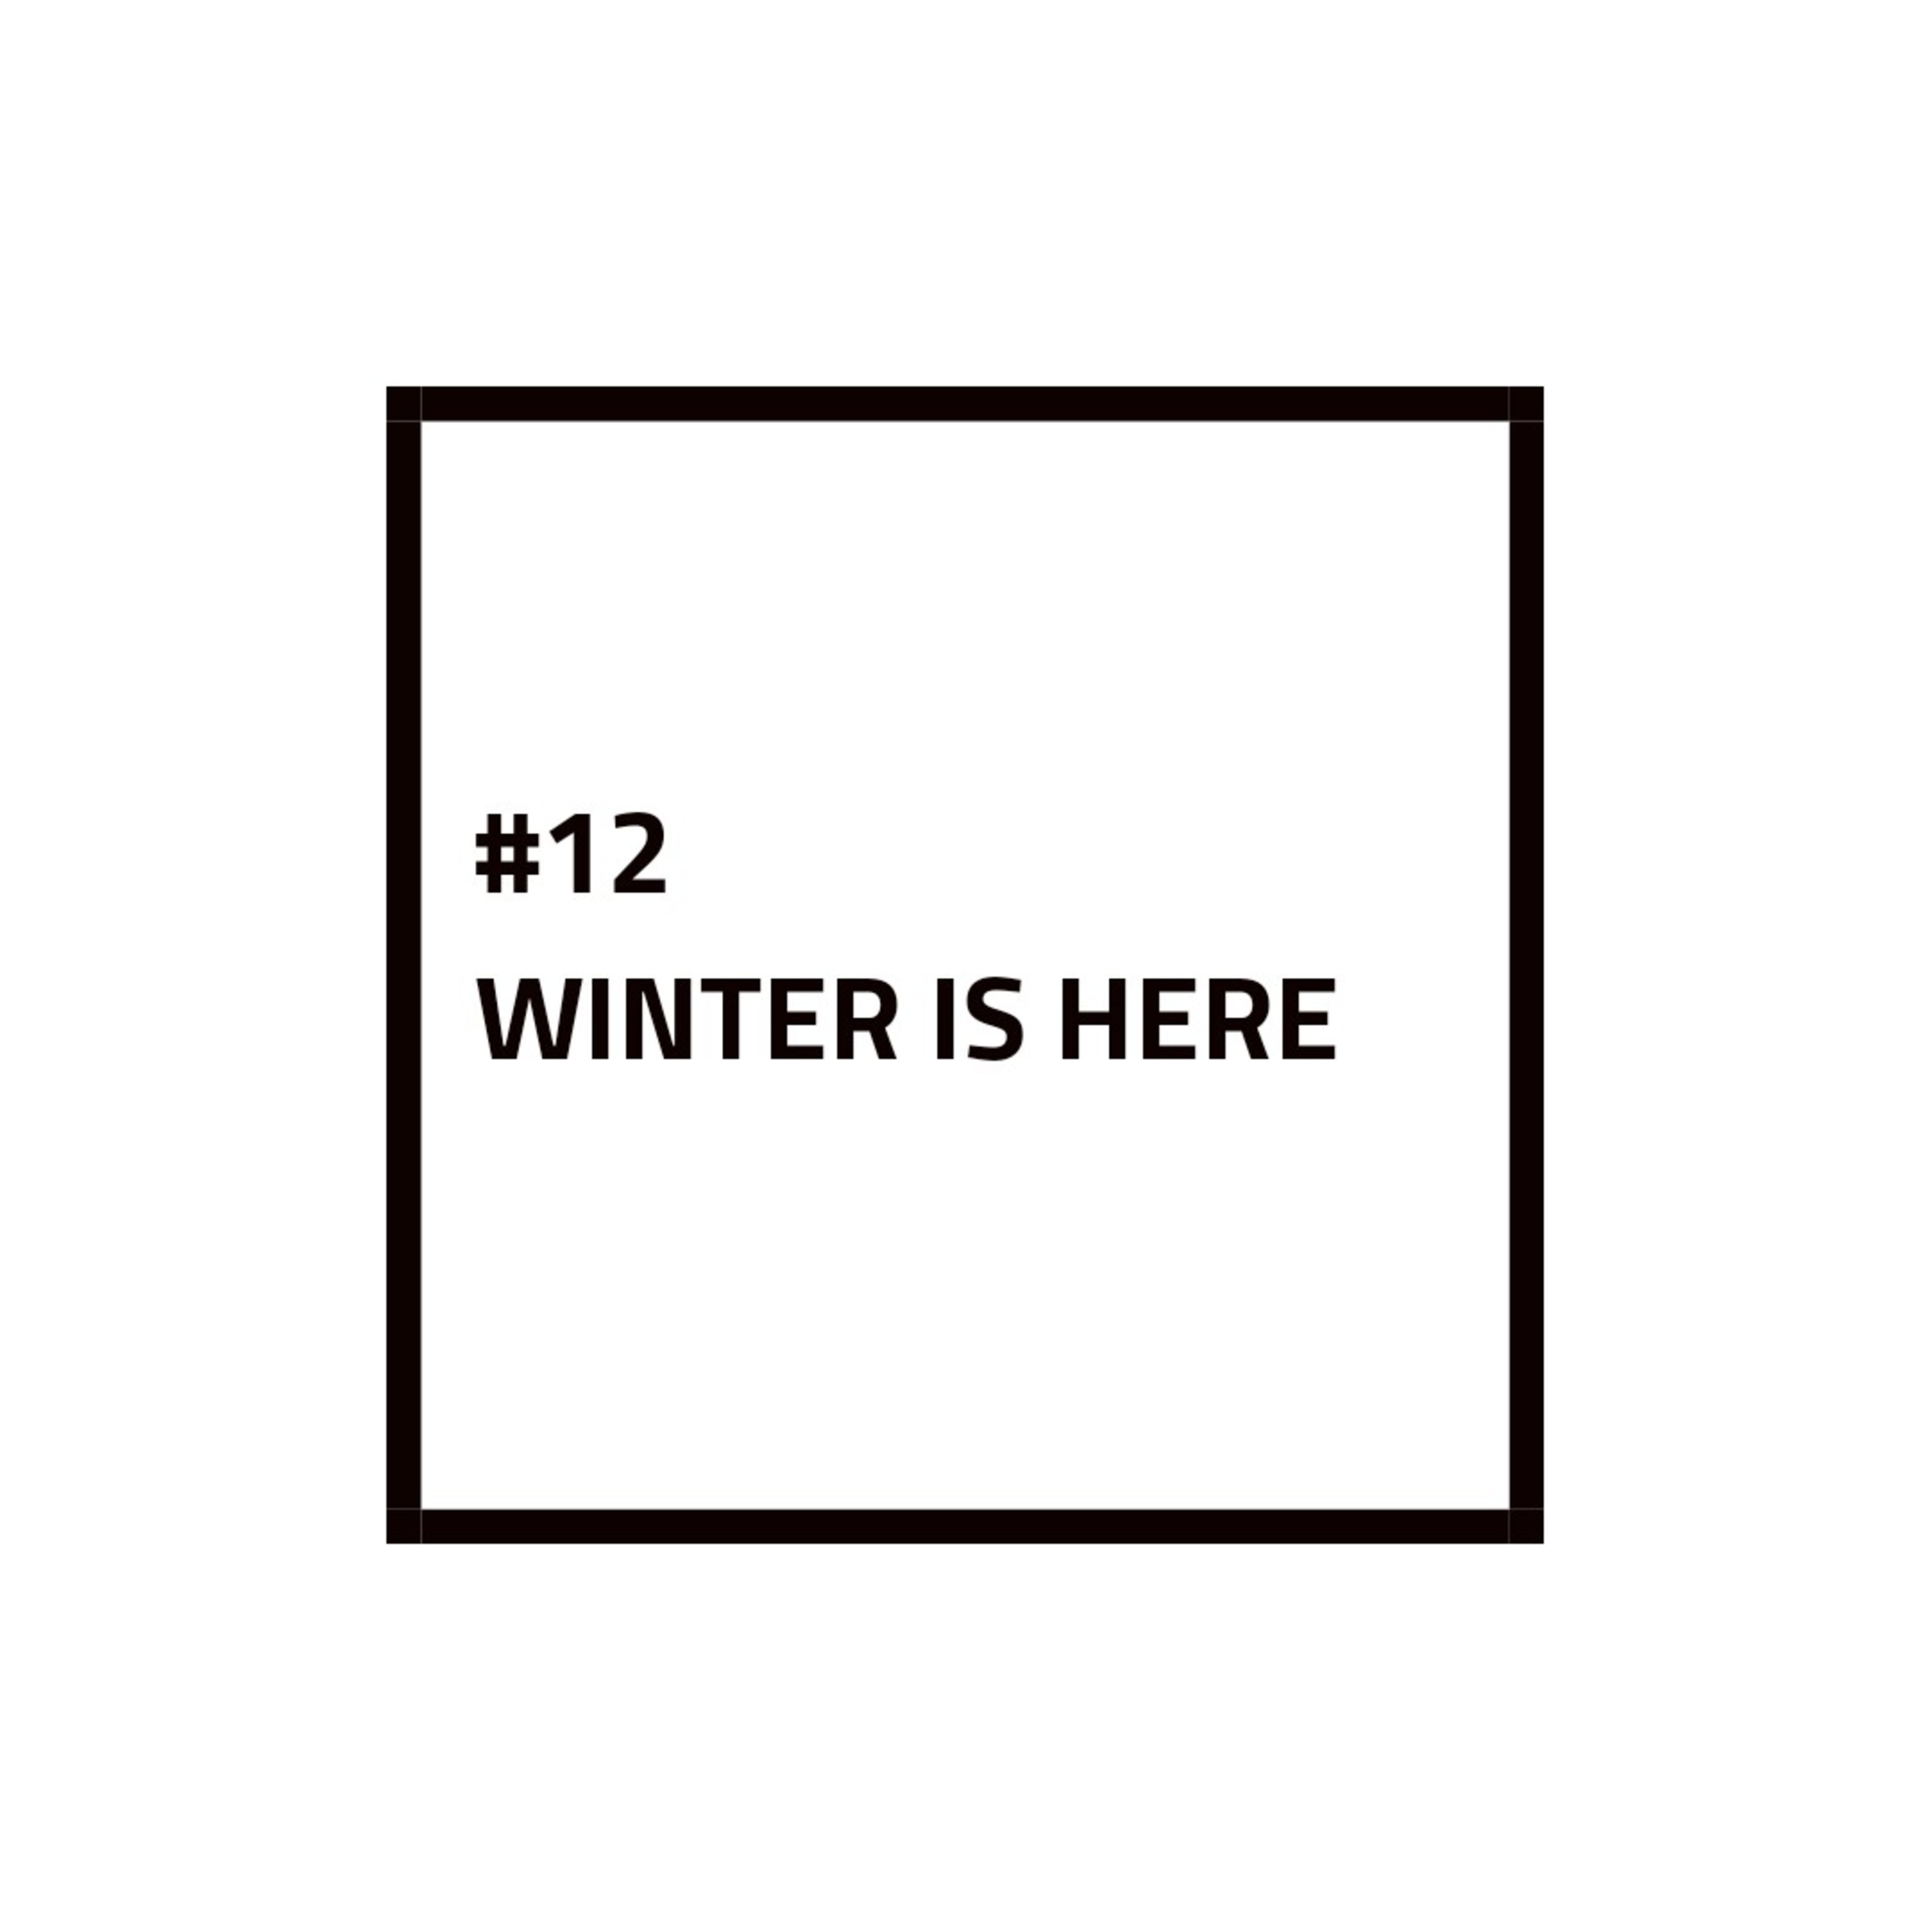 #12 - WINTER IS HERE